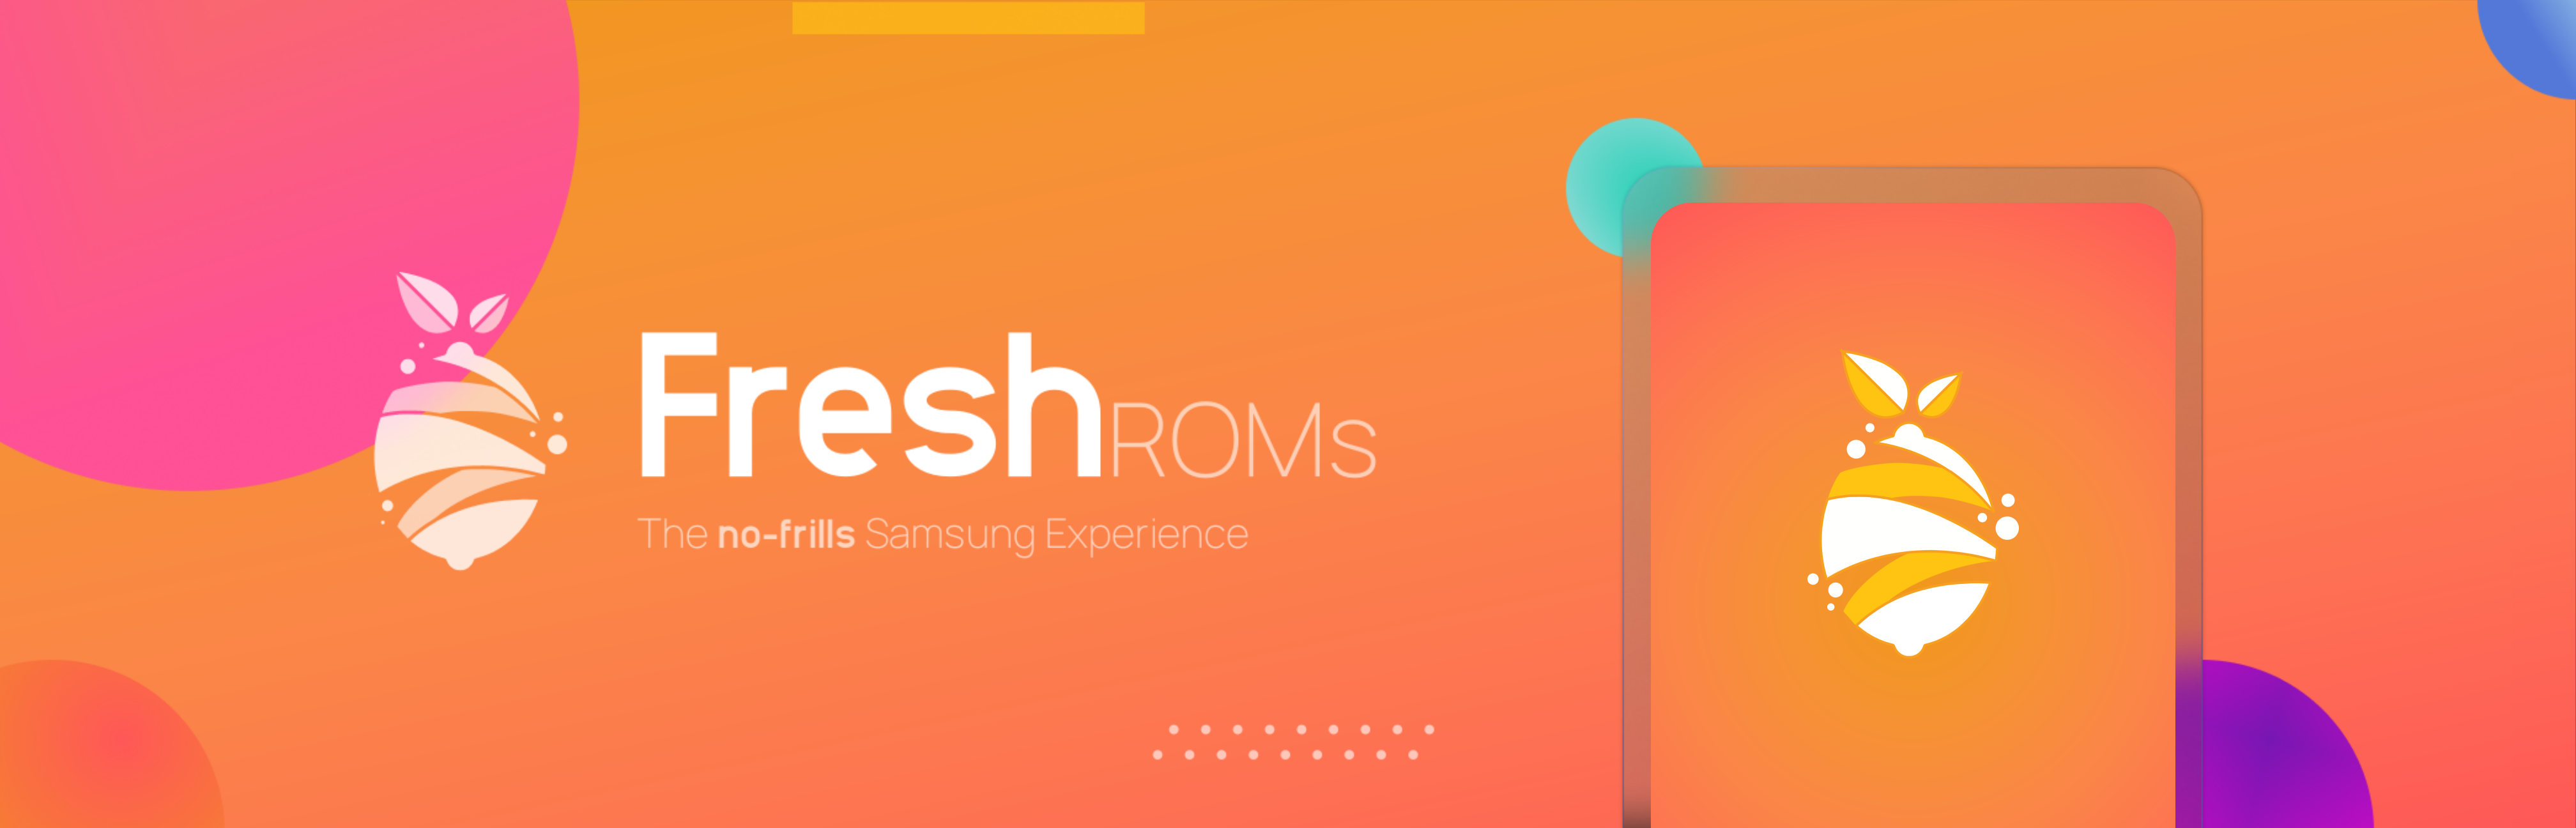 XDA_ROM_BANNER_05.png